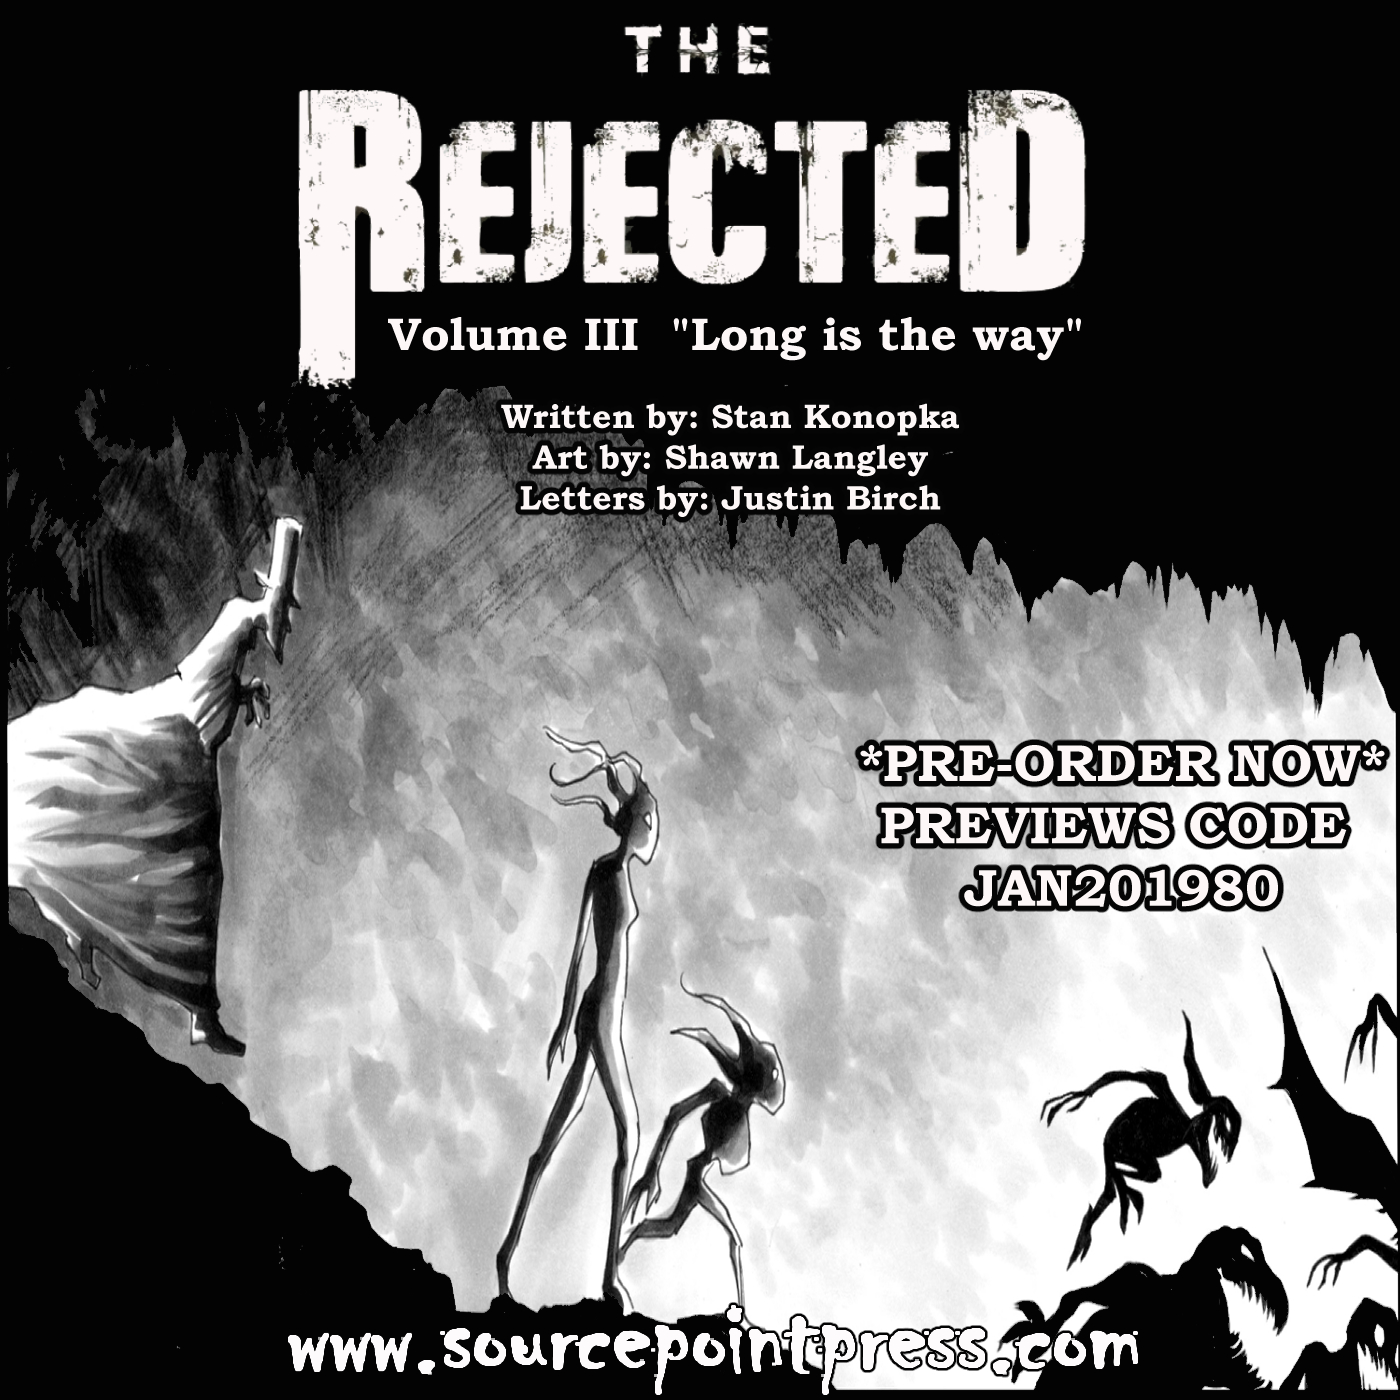 The Rejected by Stan Konopka Part 3